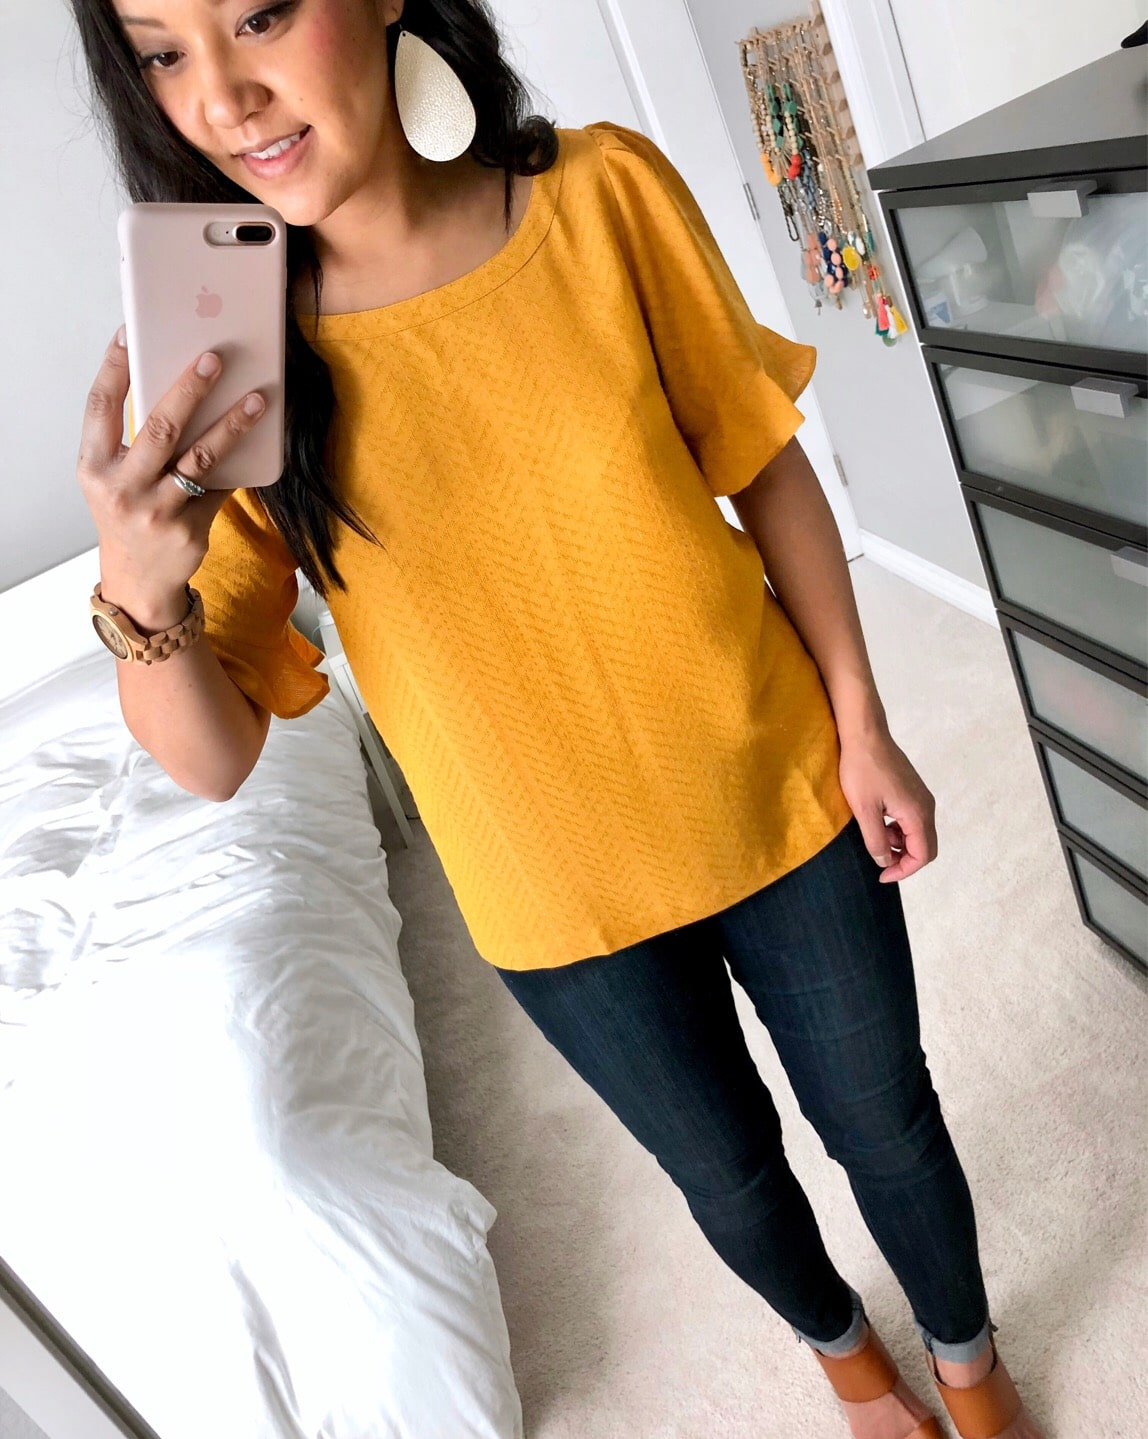 Marigold Yellow Top Review